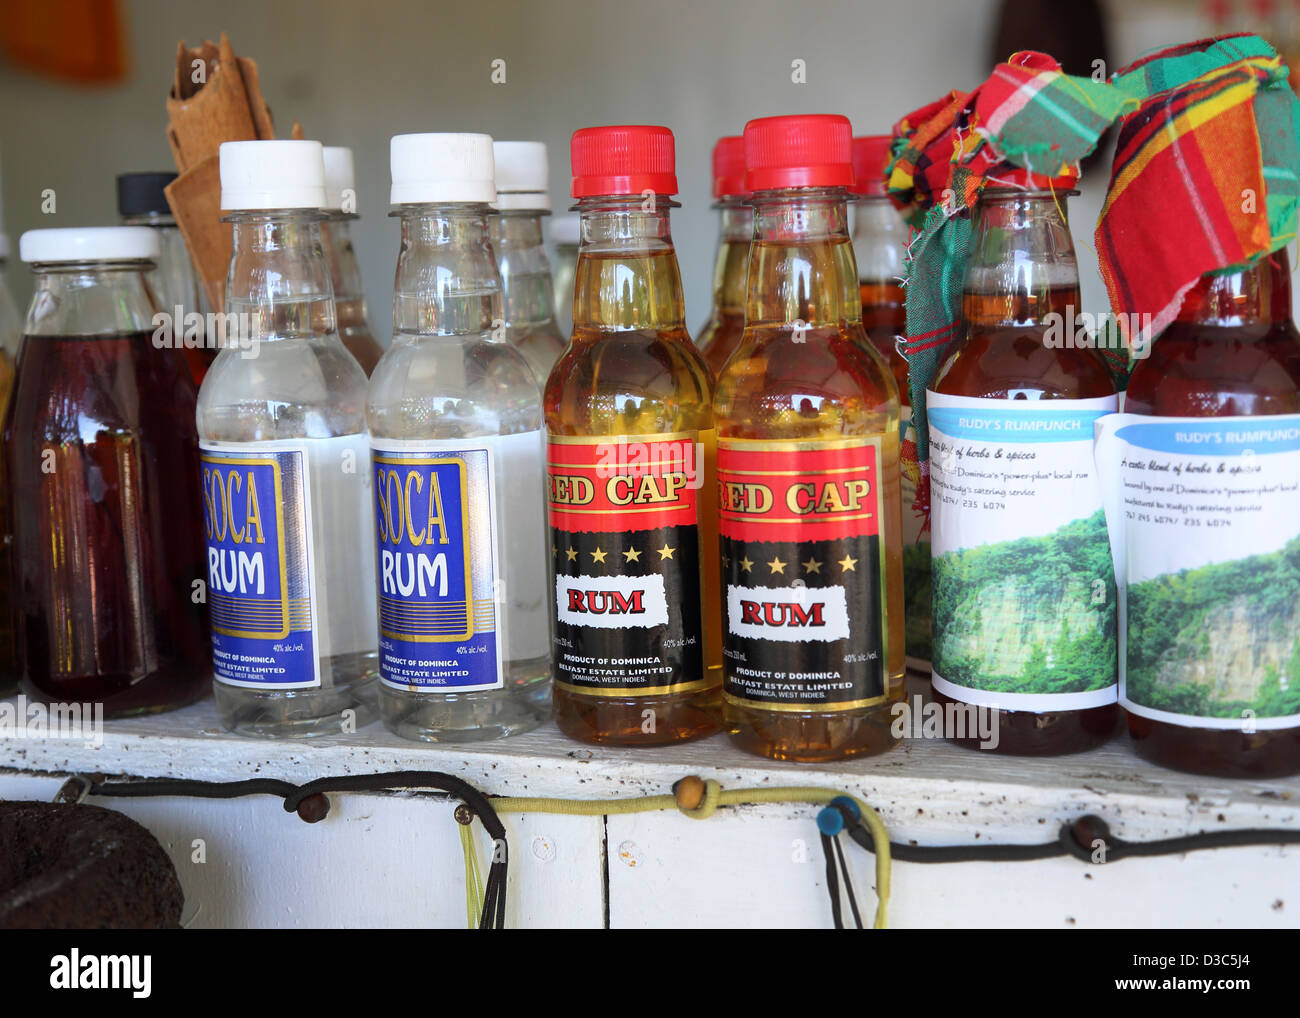 Caribbean Rum: Caribbean Rum Stock Photos & Caribbean Rum Stock Images